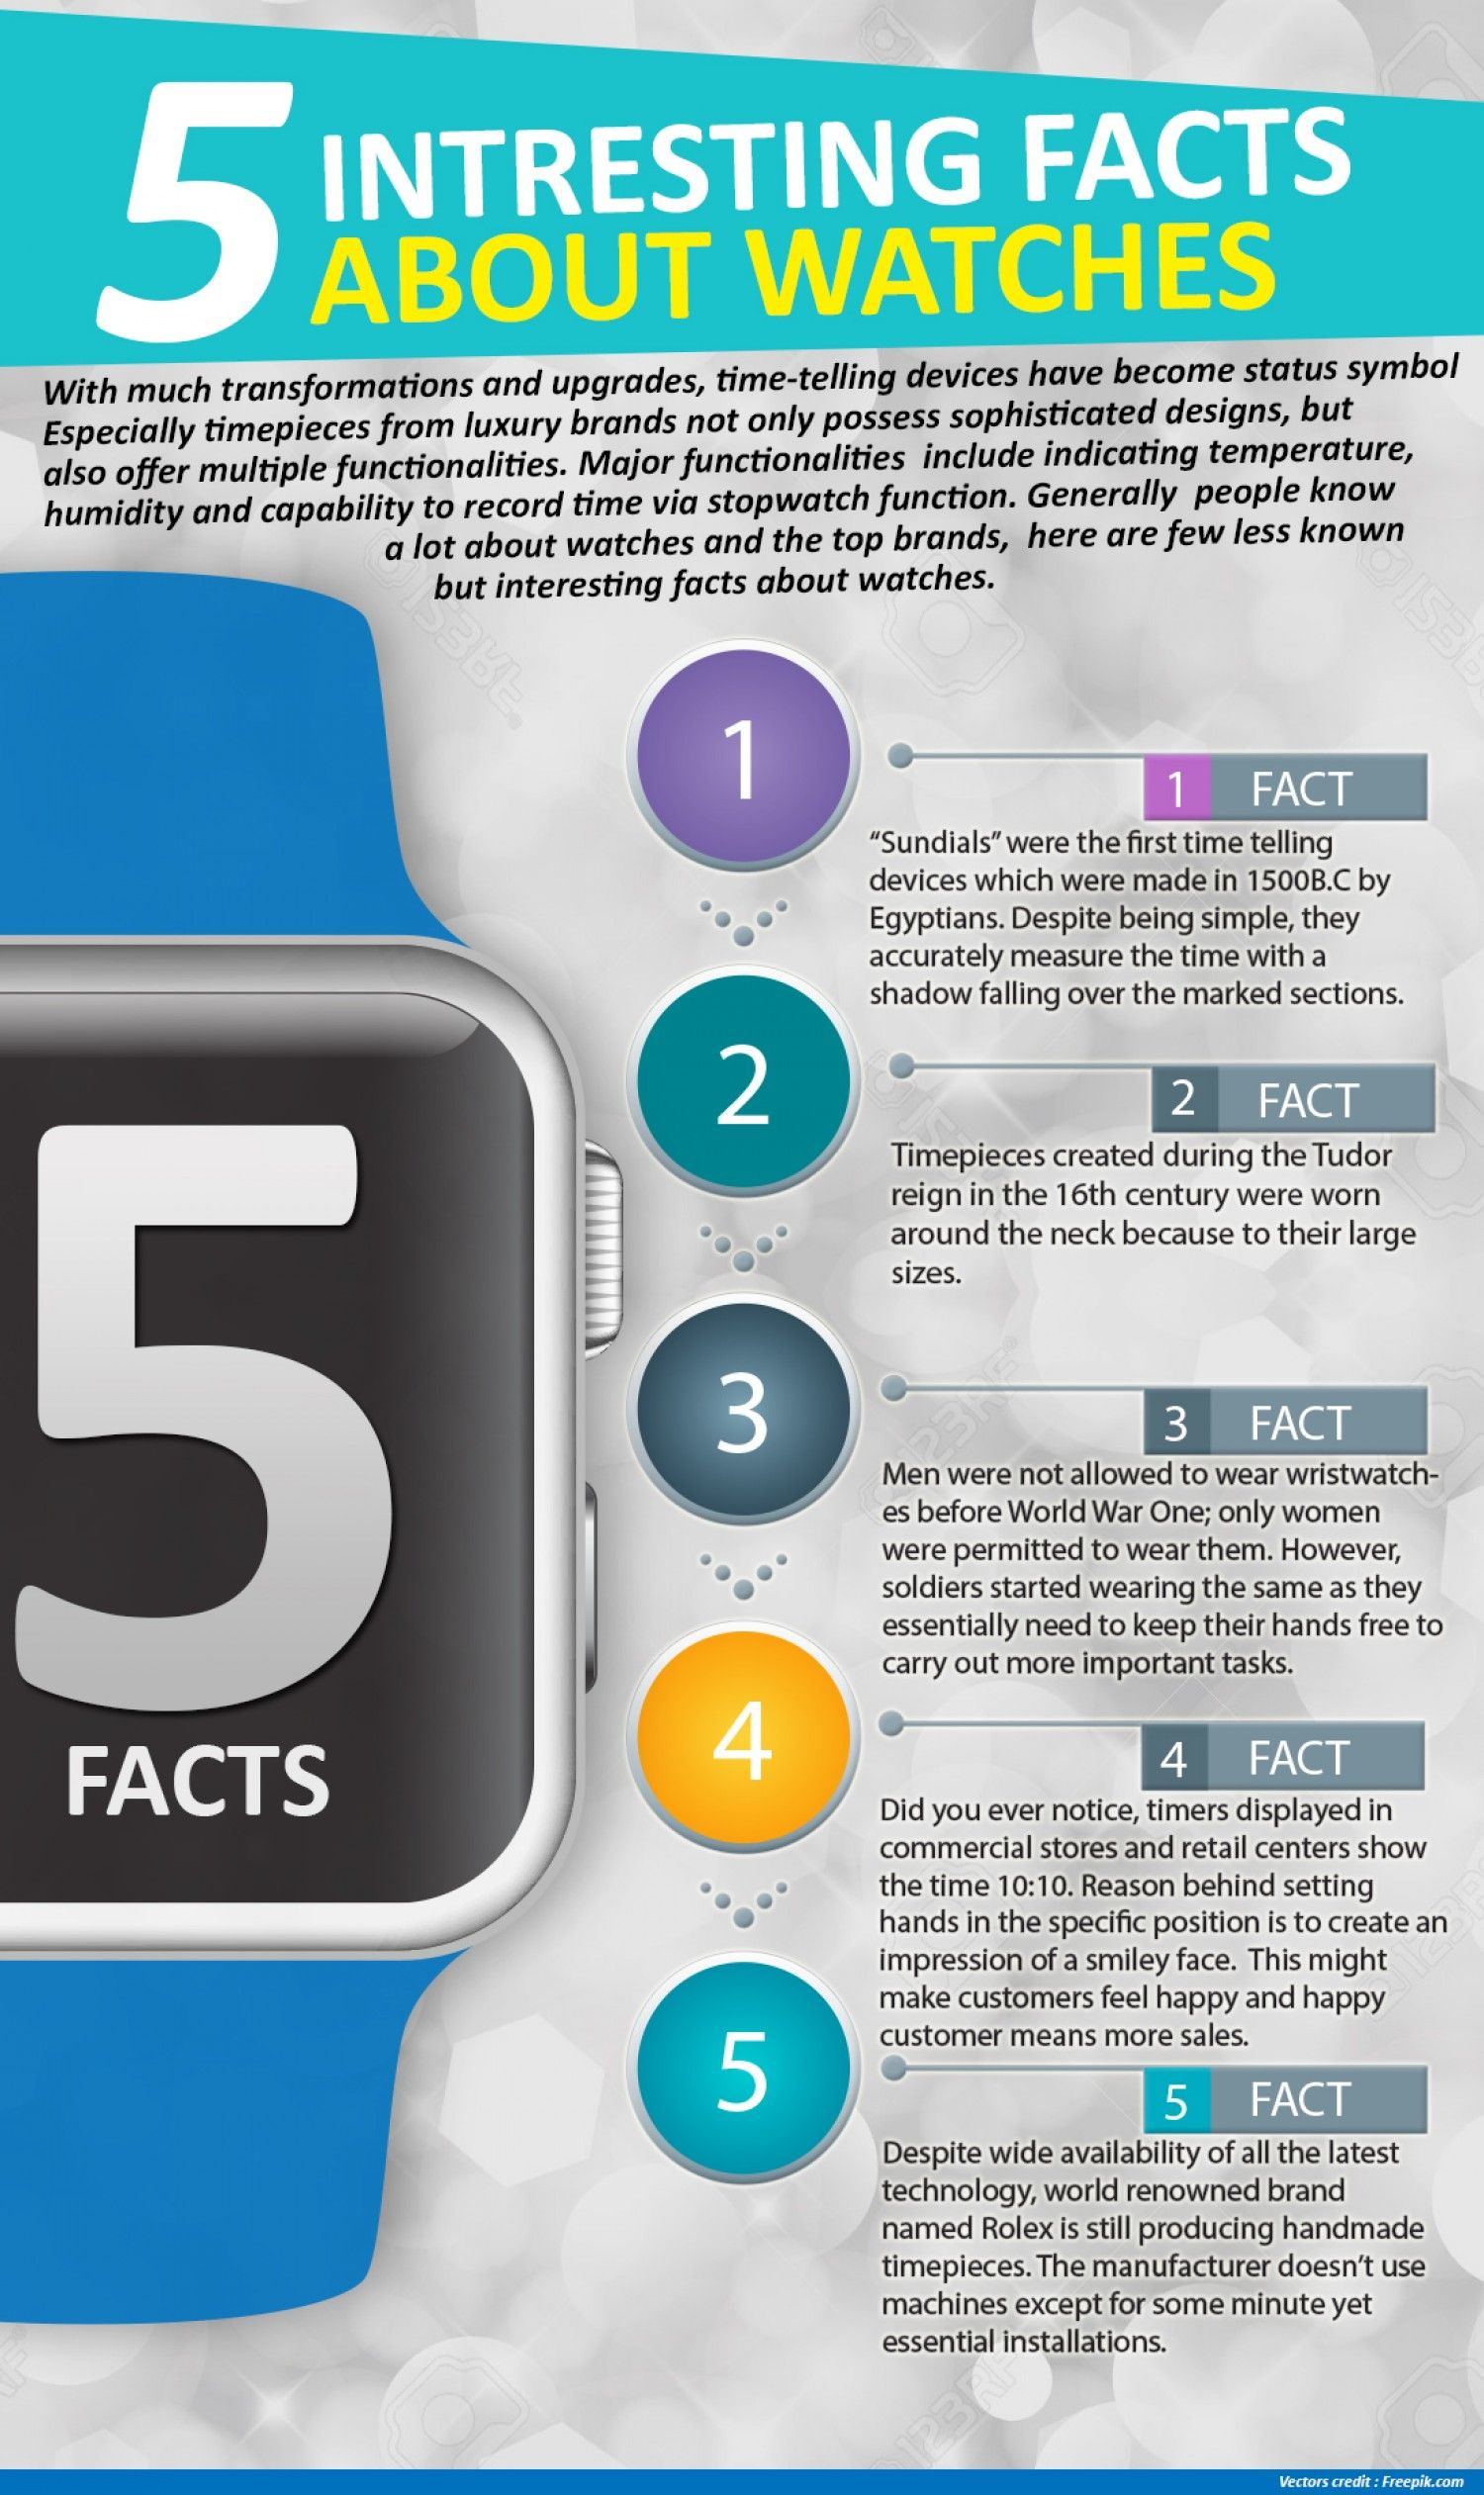 Pin by Kevin on Interesting Stuff Intresting facts, Fun